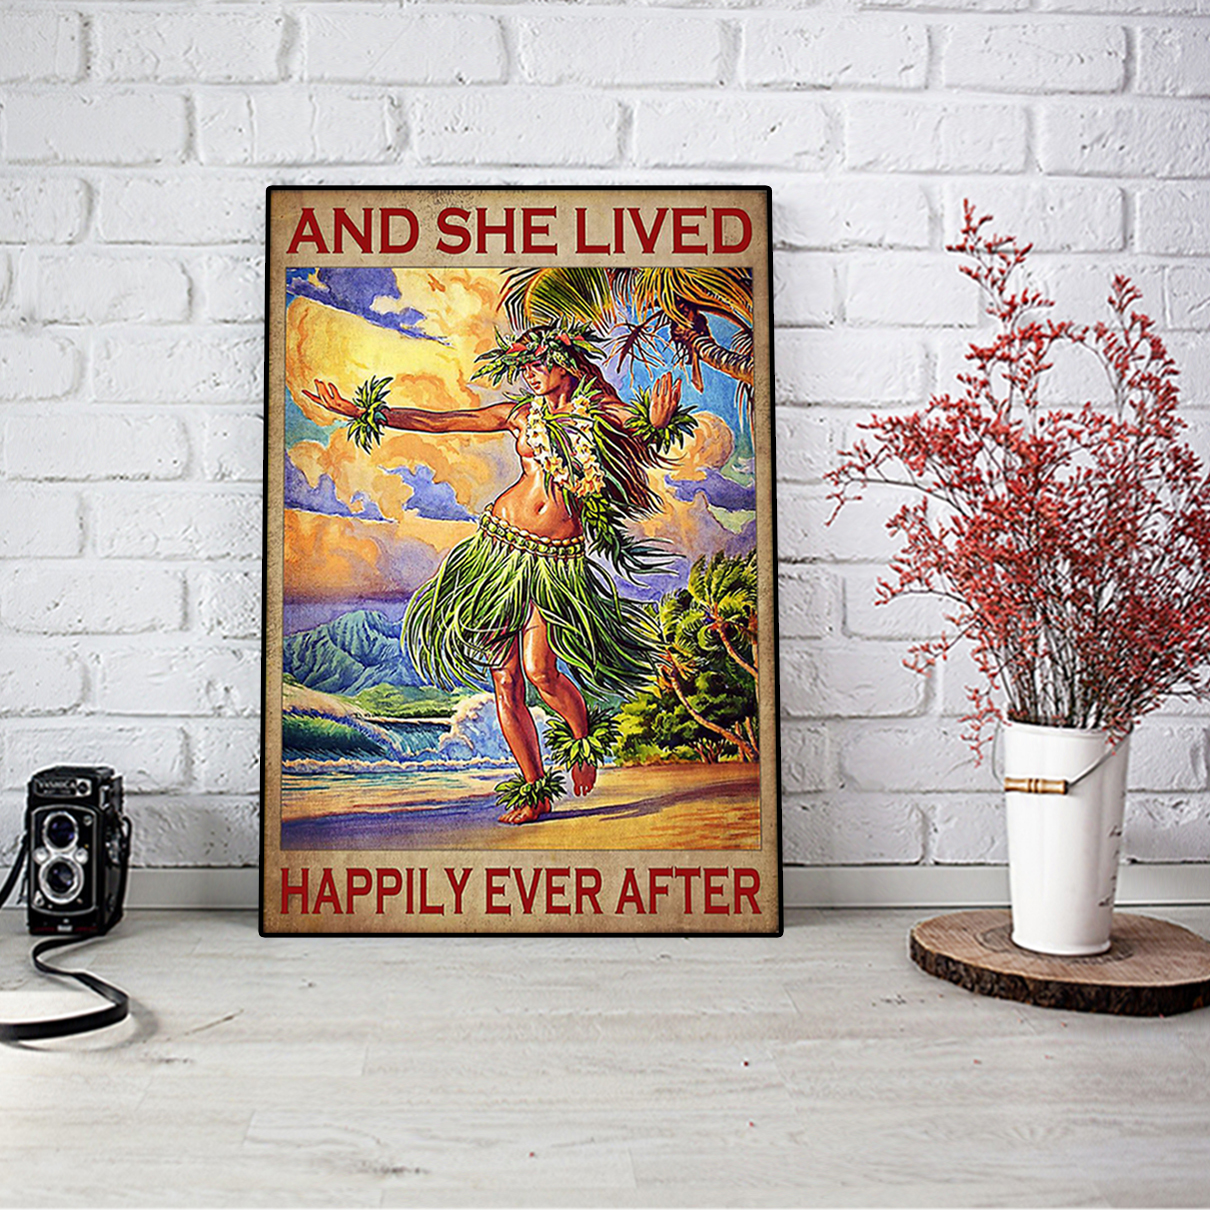 Hawaii girl and she lived happily ever after poster A2